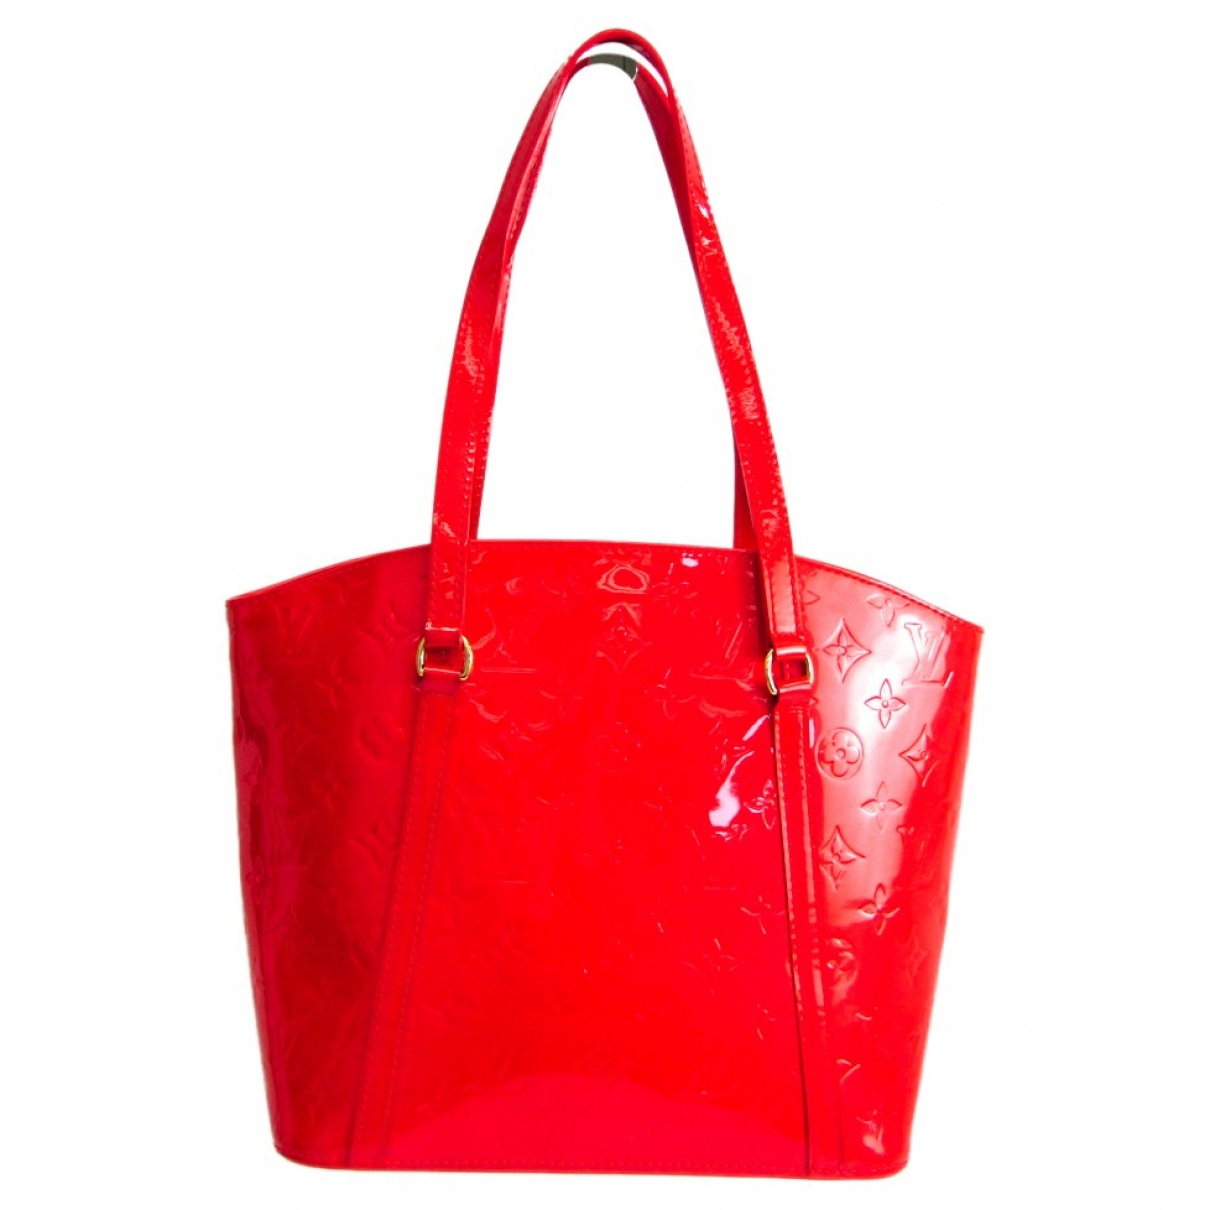 Louis Vuitton \N Red Patent leather handbag for Women \N